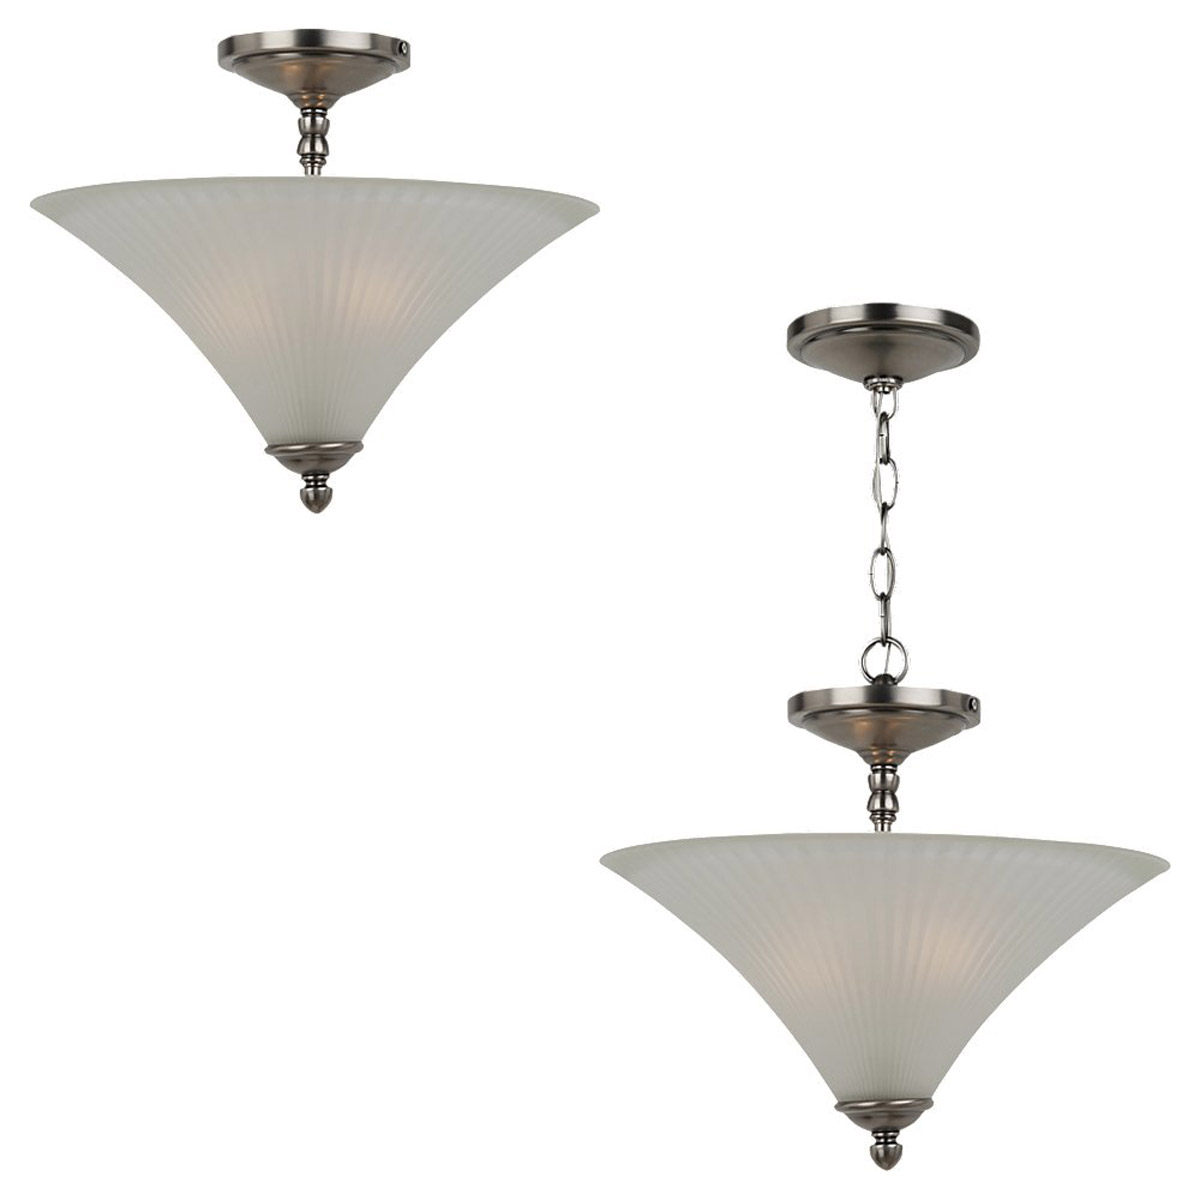 Sea Gull Lighting Joliet 2 Light Semi-Flush Mount in Antique Brushed Nickel 77935-965